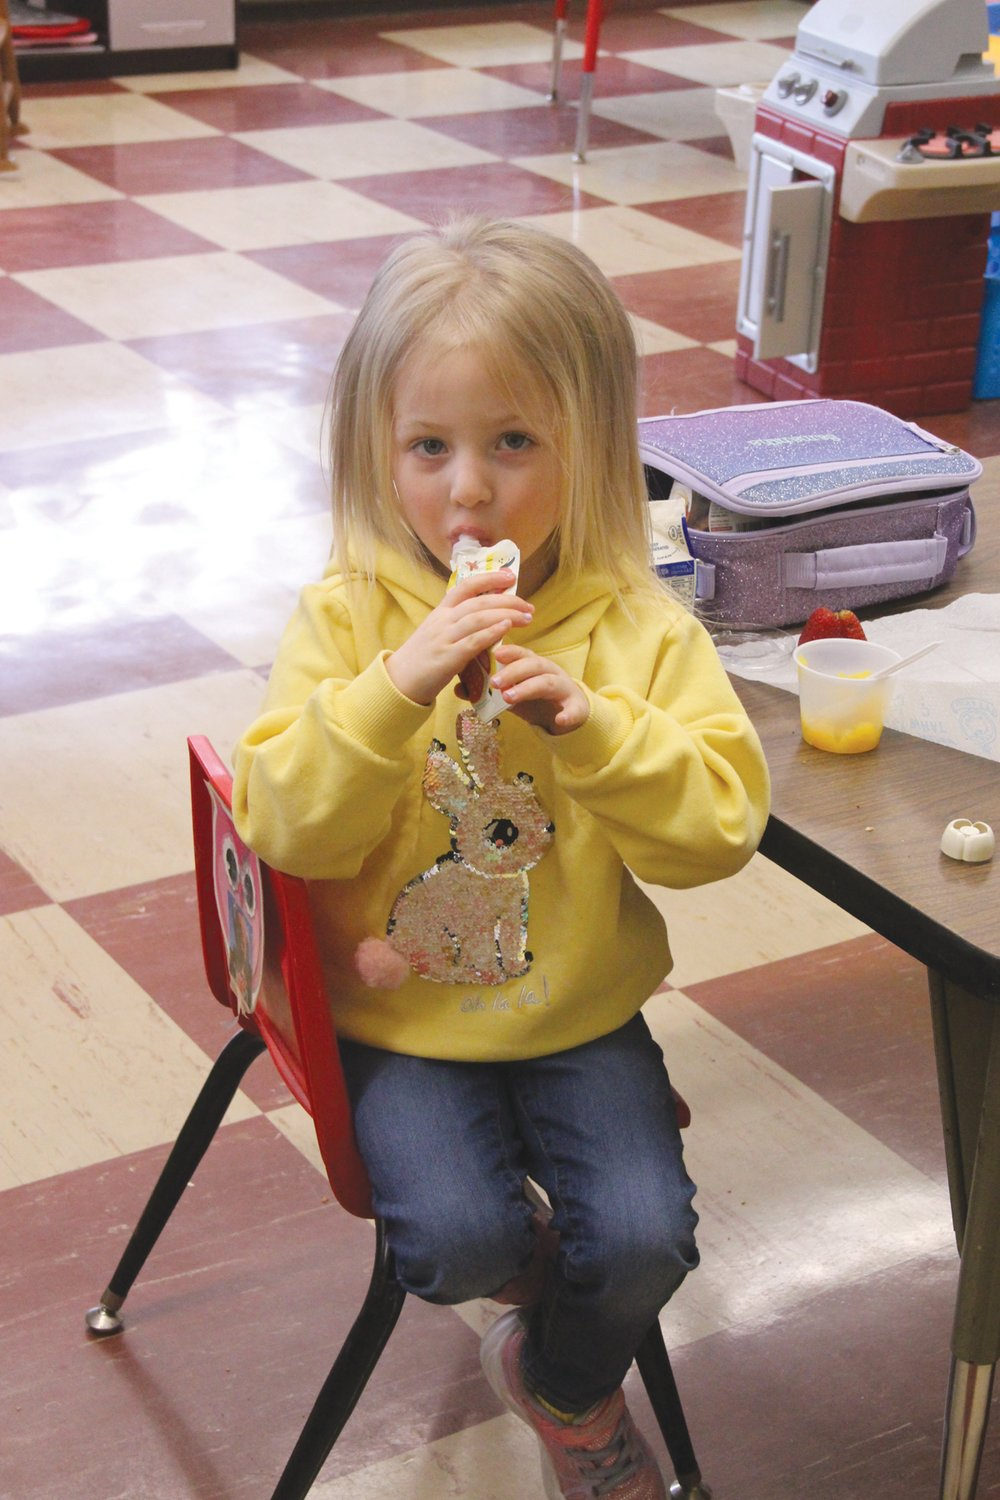 LUNCH BREAK: Samantha Price, who is in pre-school, enjoys a lunch treat.